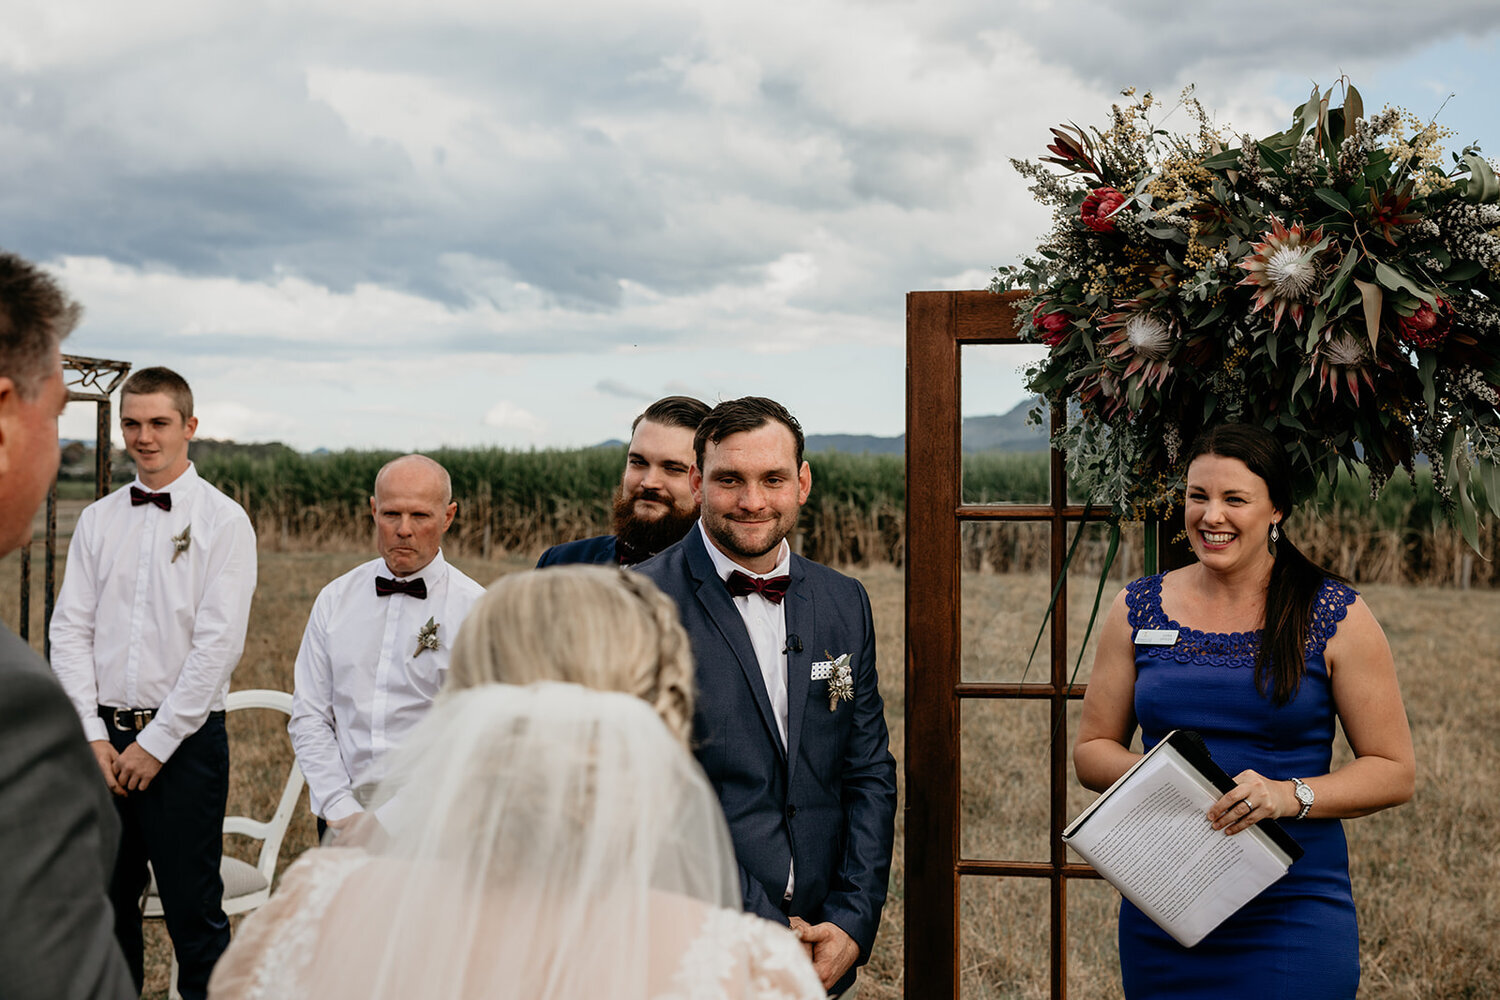 Leisa Ottley - I tell love stories!! My official title is 'Civil Marriage Celebrant', which means I guide couples through one of the most exciting, nerve-racking, emotion filled moments of their lives and that's pretty cool.